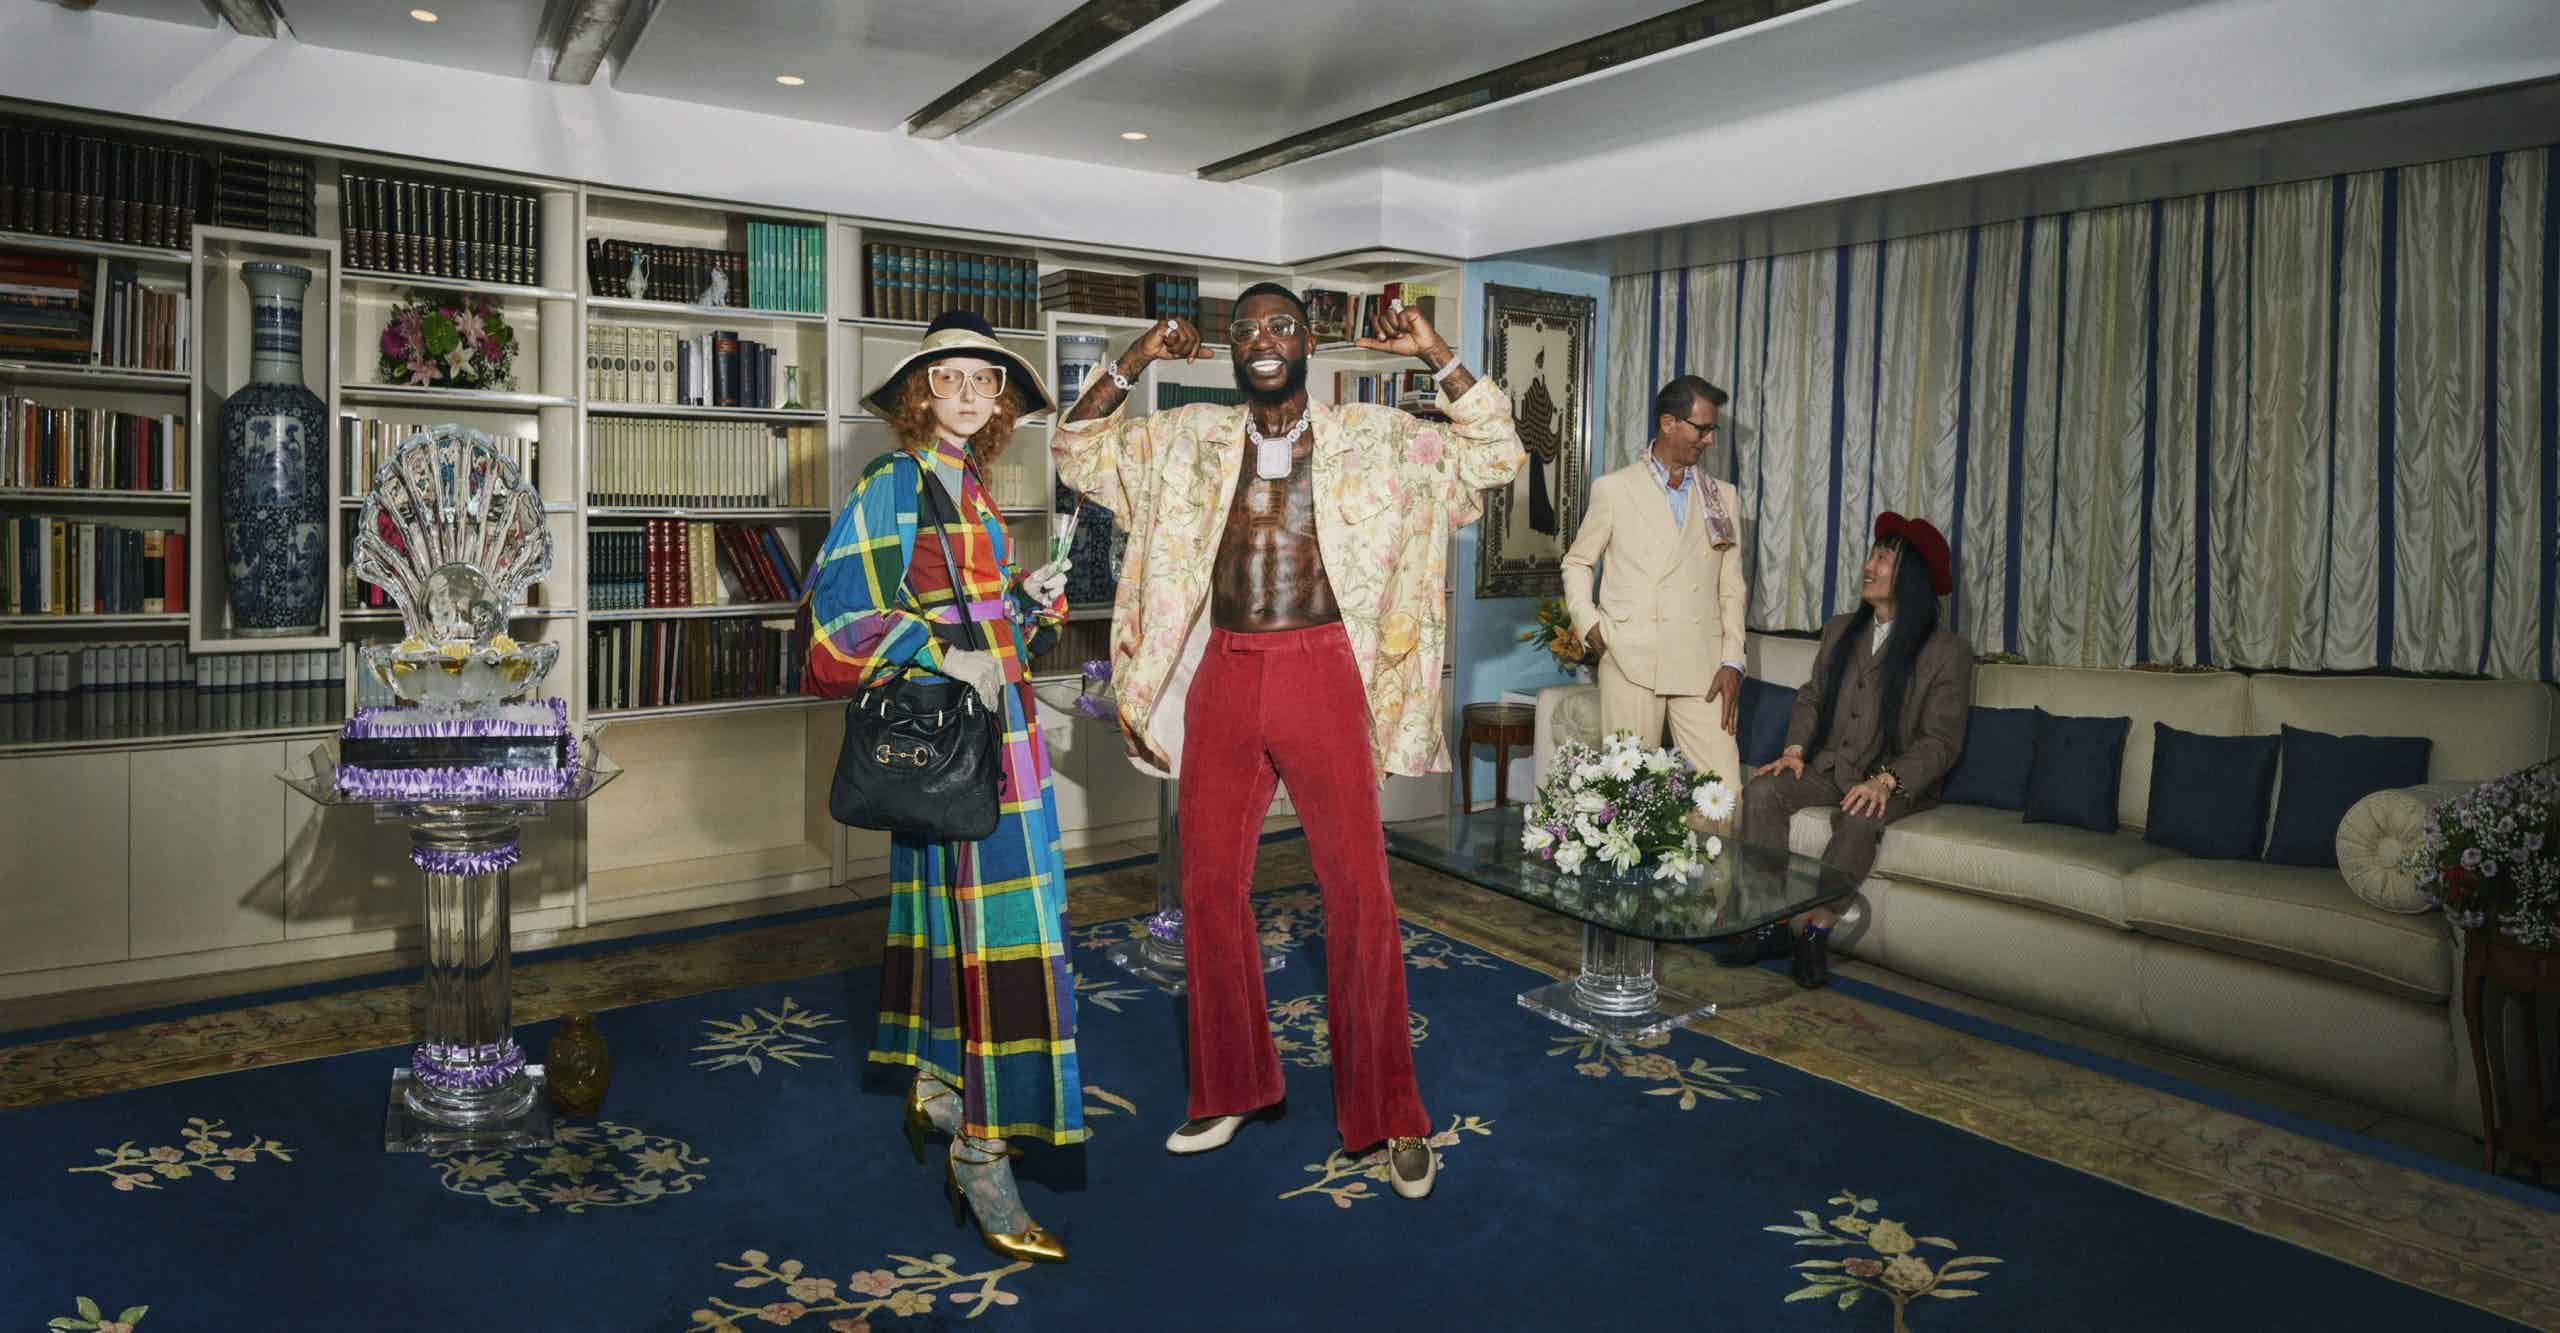 GUCCI - Gucci Cruise 2020 Photographer: Harmony Korine Stylist: Alessandro Michele Location: Rome